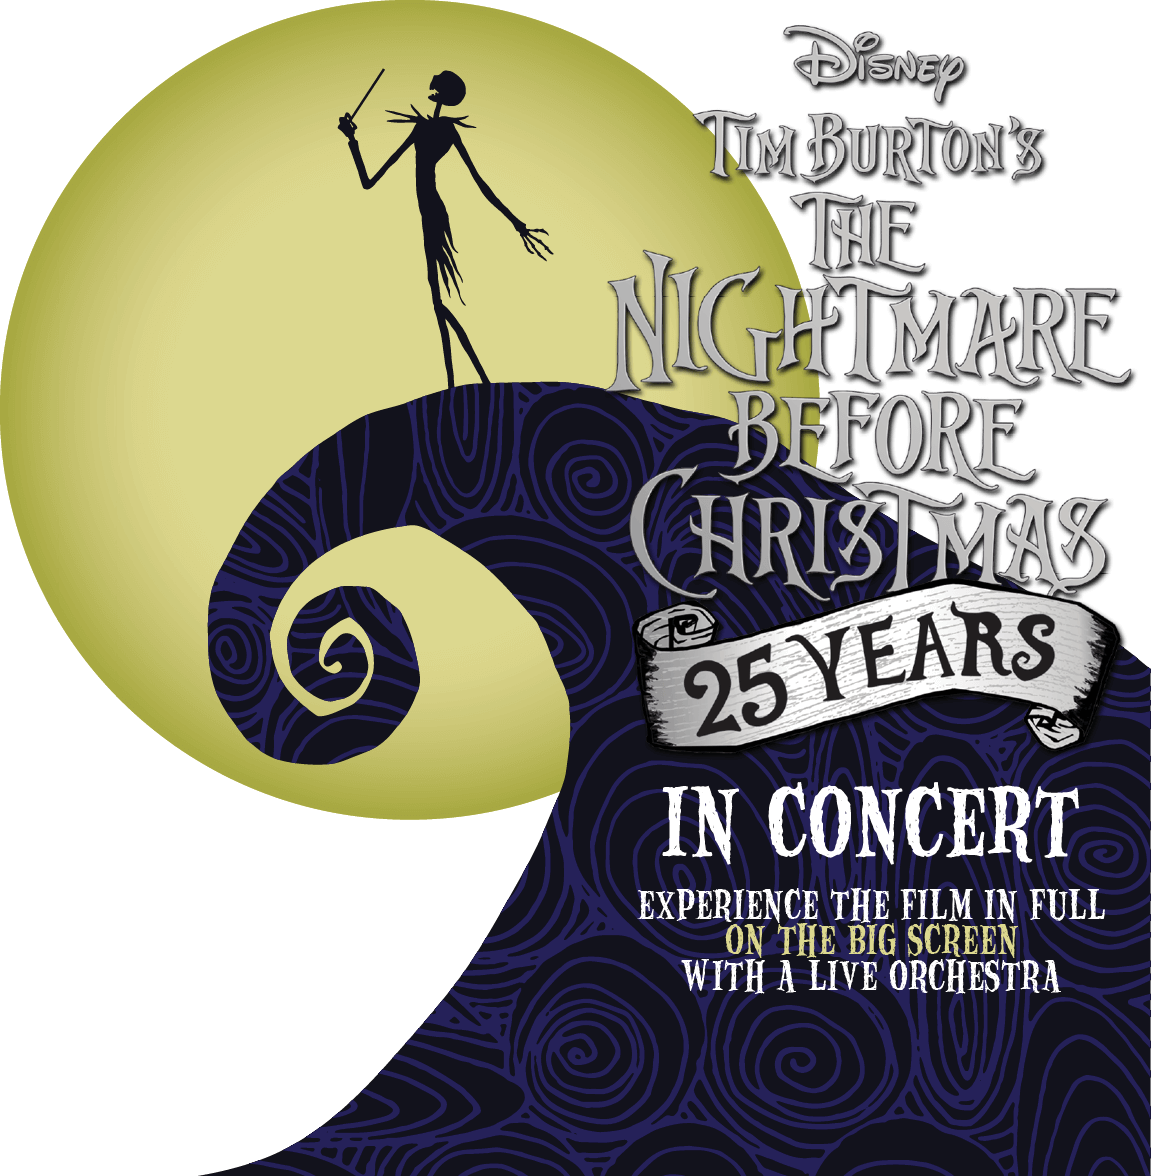 The Nightmare Before Christmas - The